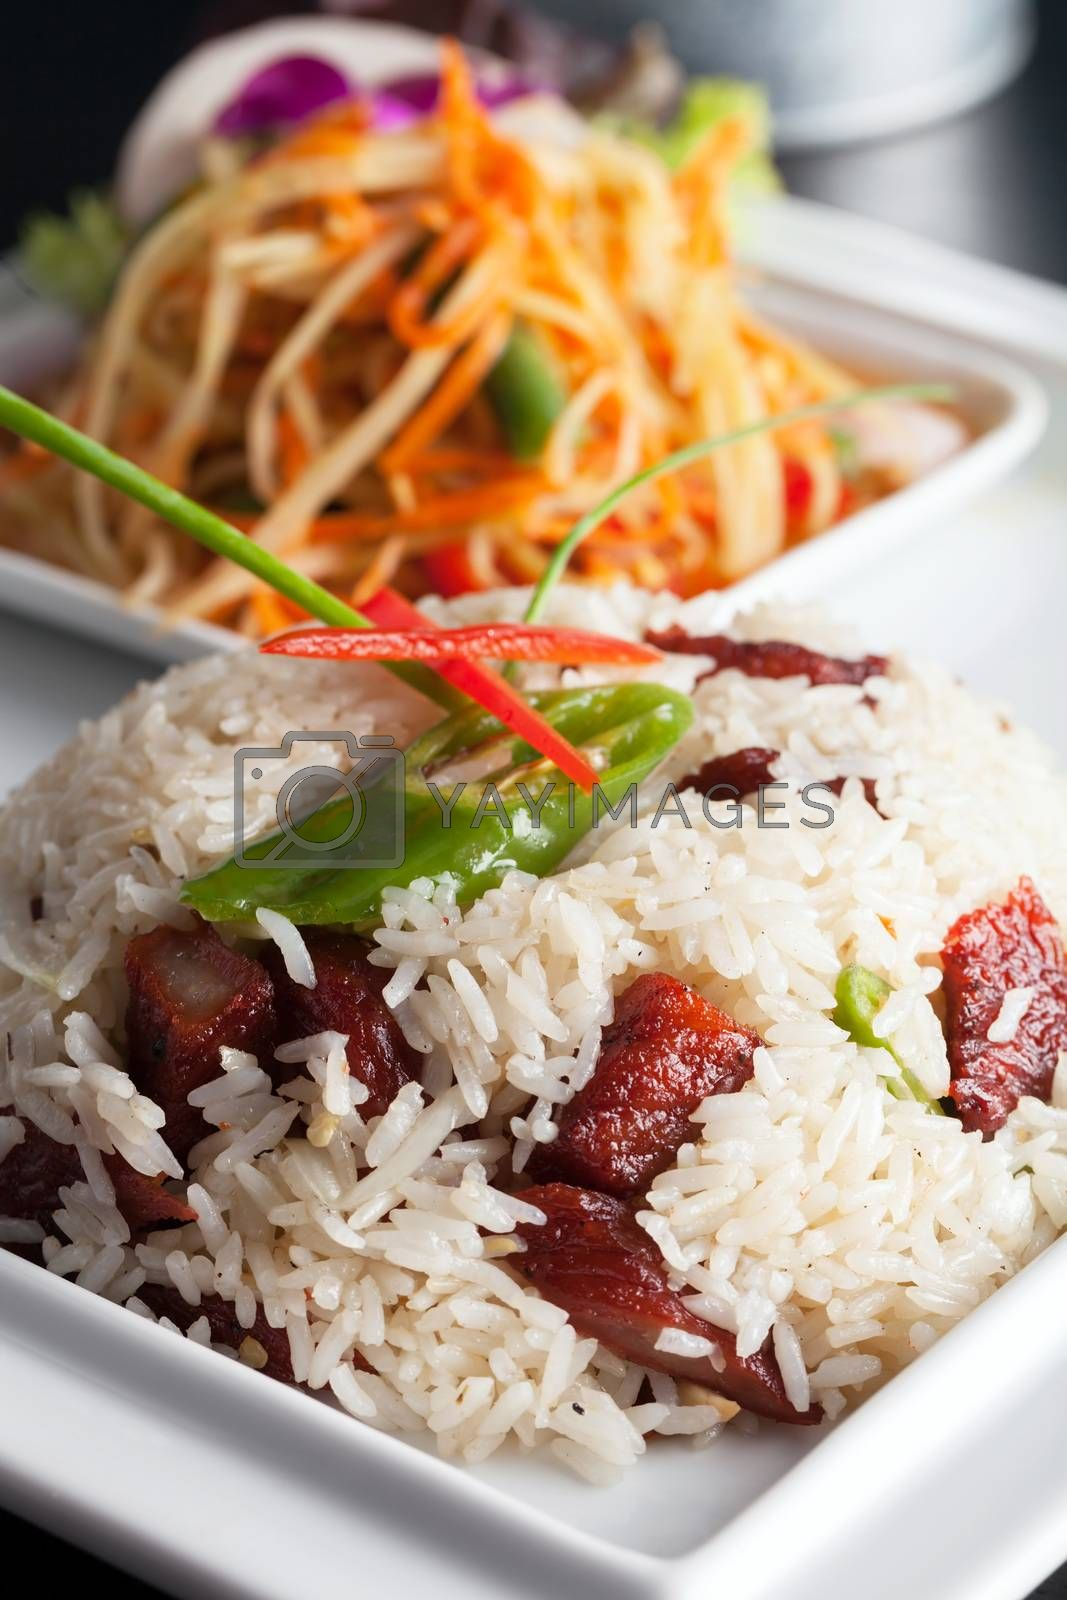 Royalty free image of Thai Pork and Rice with Som Tum Salad by graficallyminded